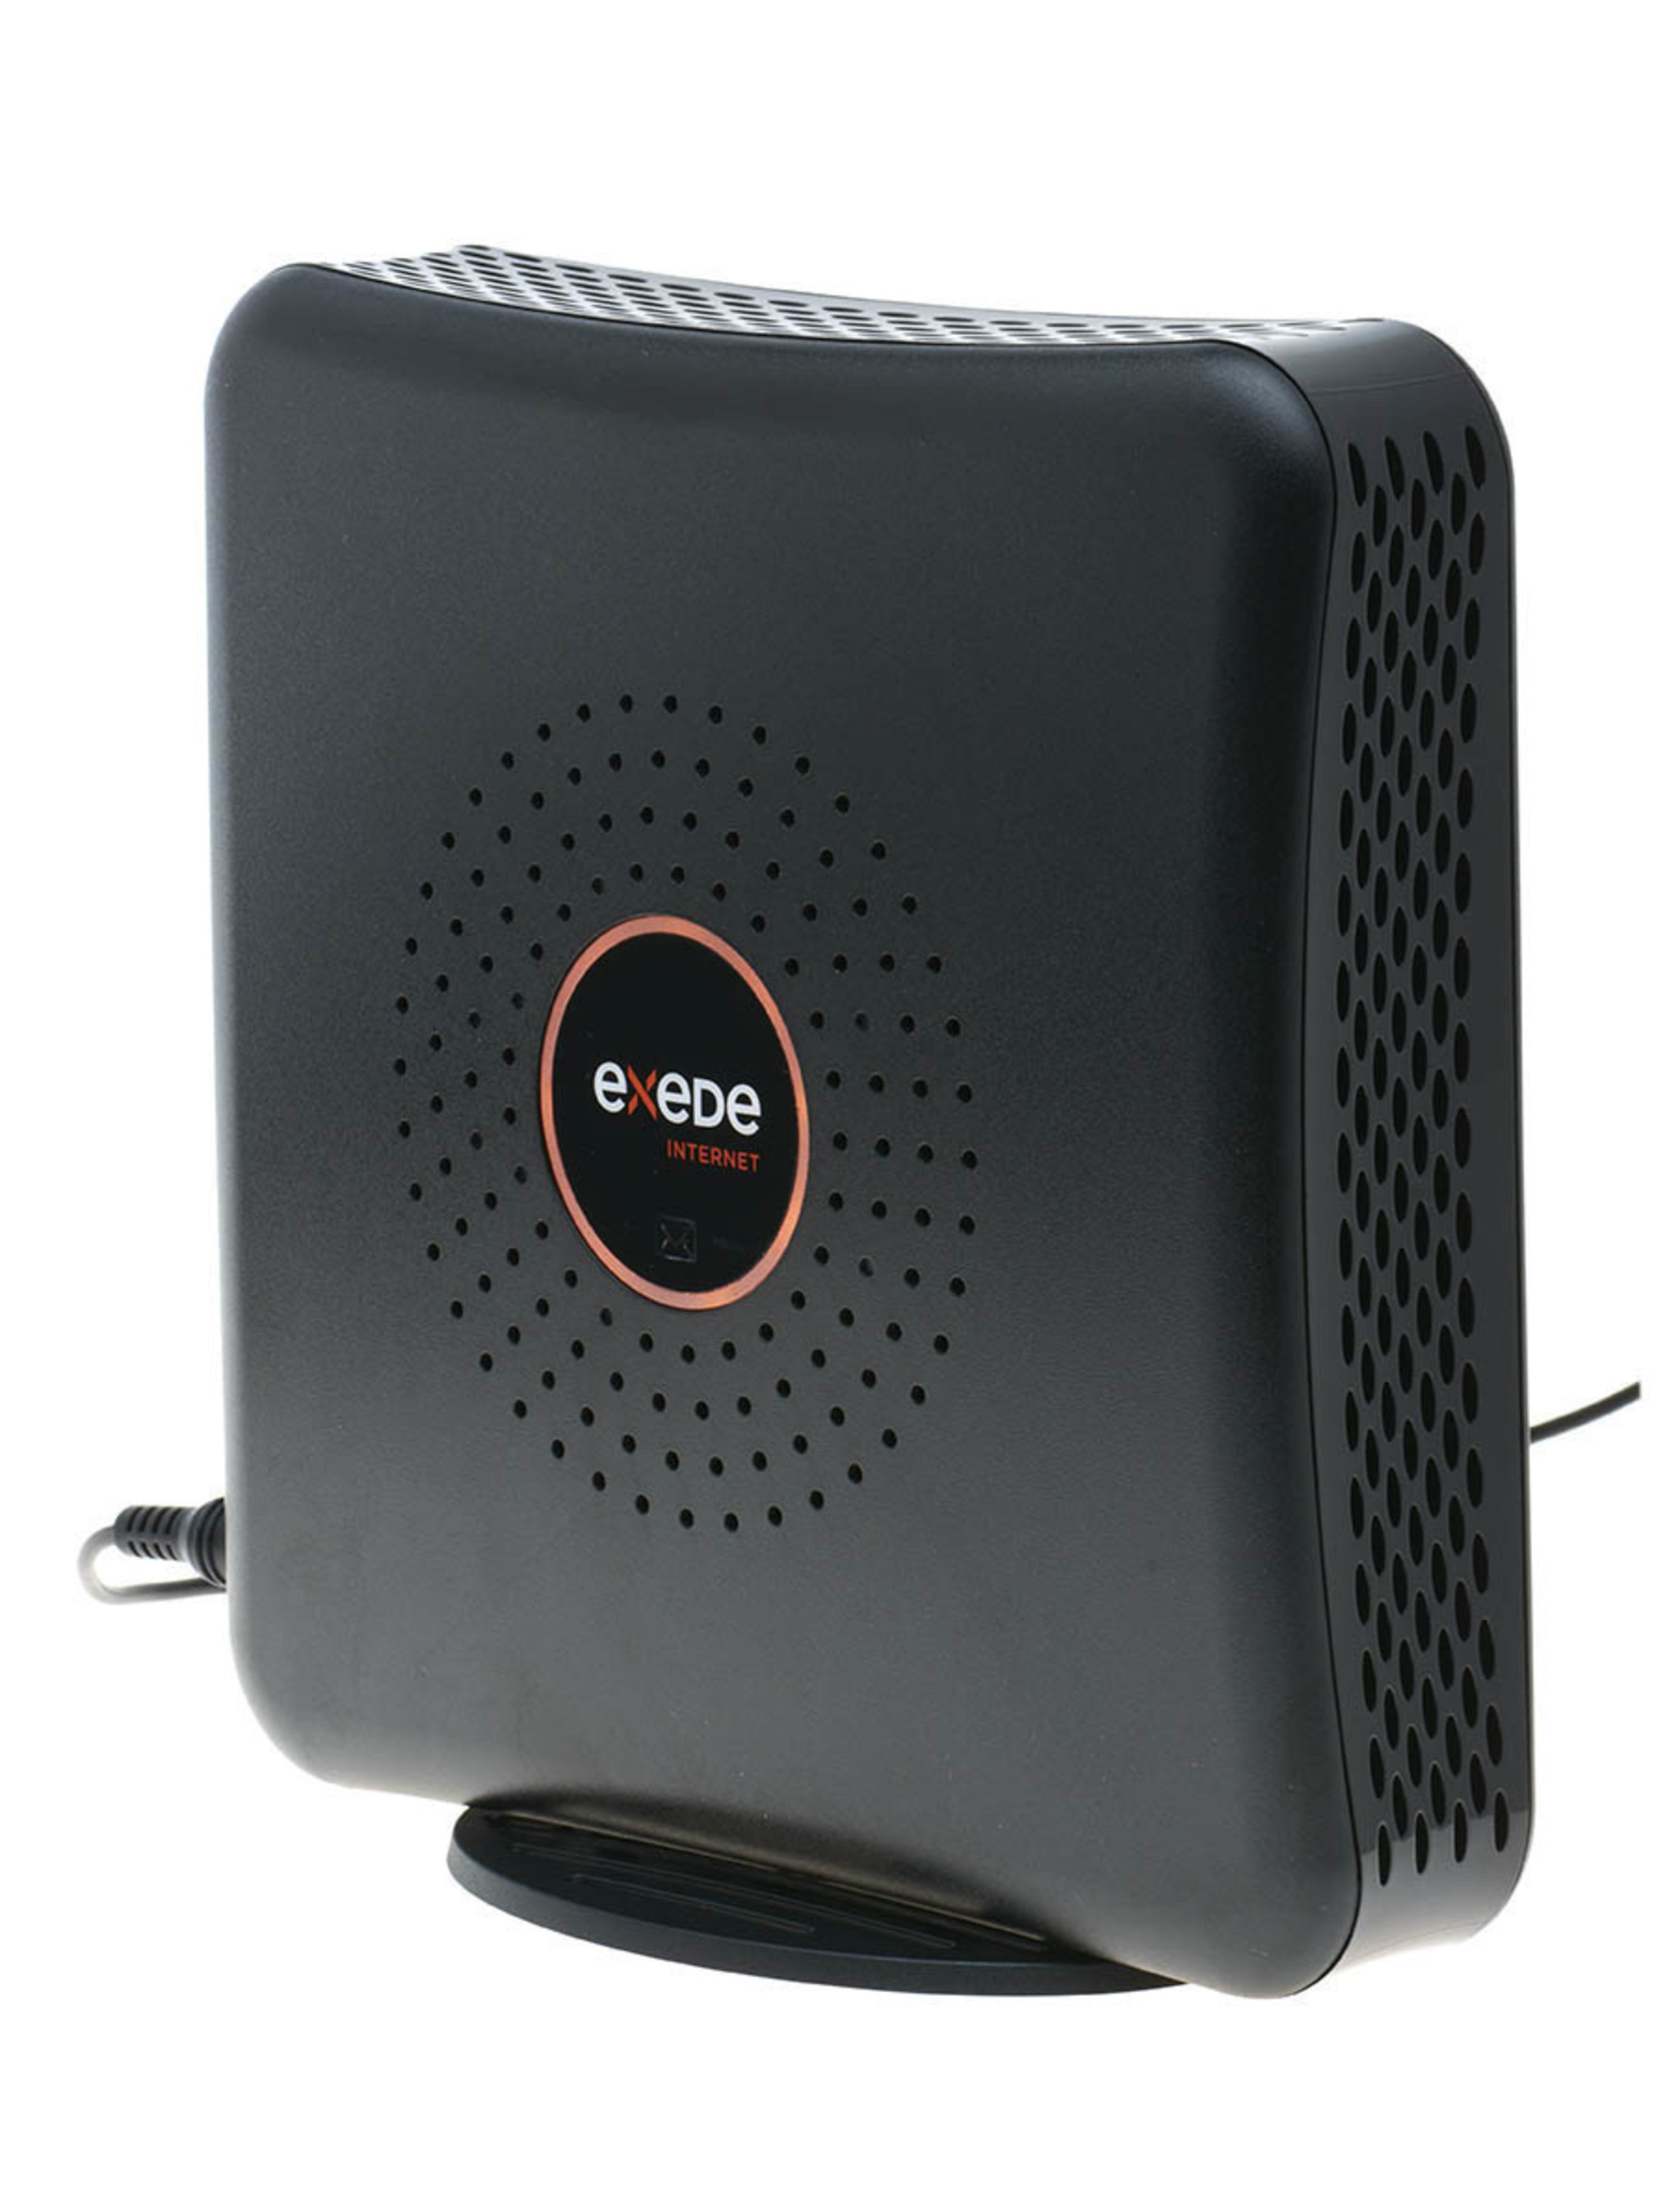 ViaSat Unveils Fastest Home Satellite Internet Service in the U.S. with the New Exede WiFi Modem and a 25 Mbps Plan